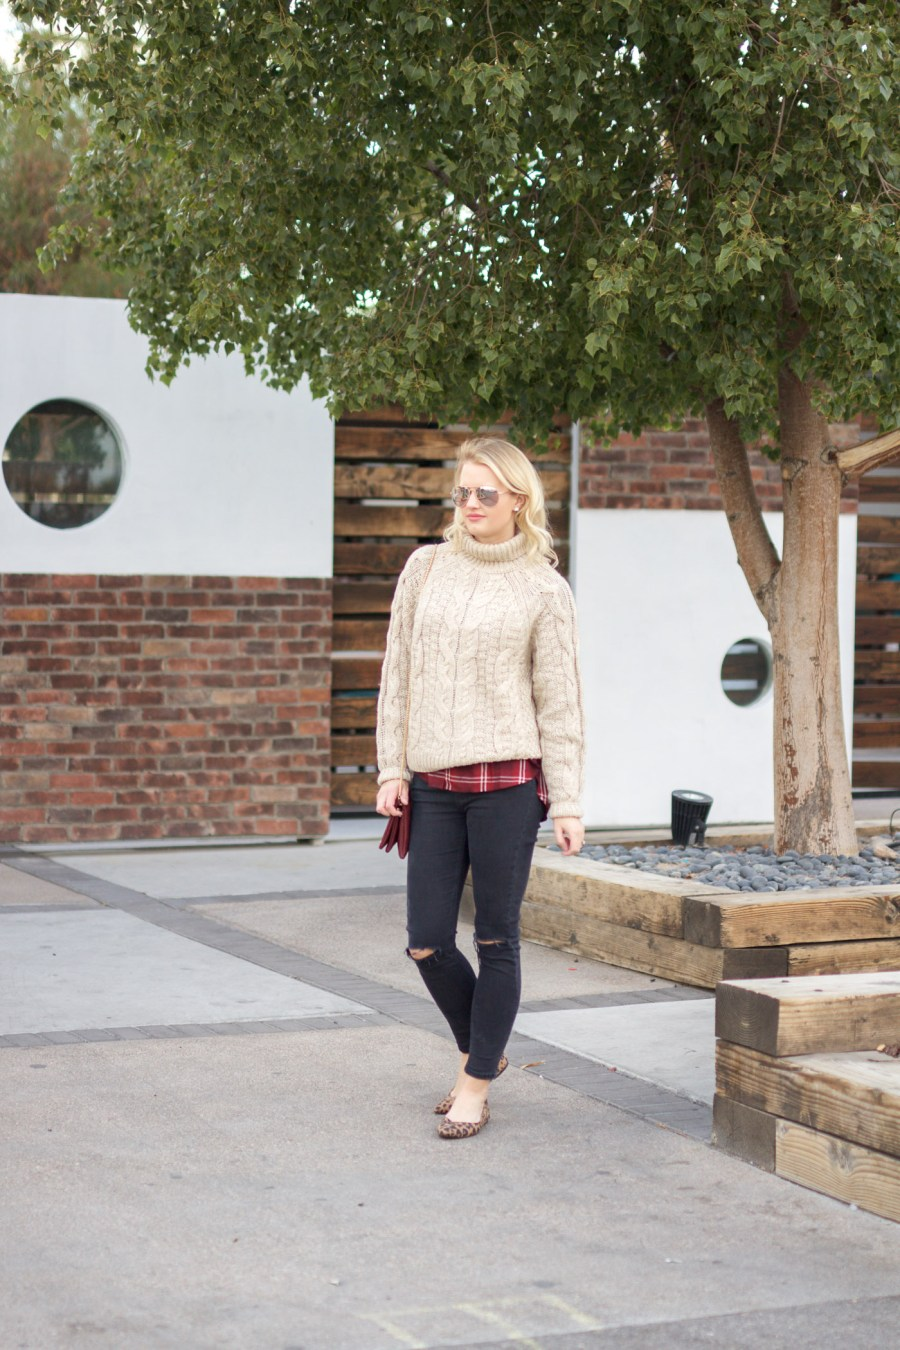 oversized sweater, how to style an oversized sweater, fashion blog, Treats and Trends, pinterest outfit idea, fall outfit